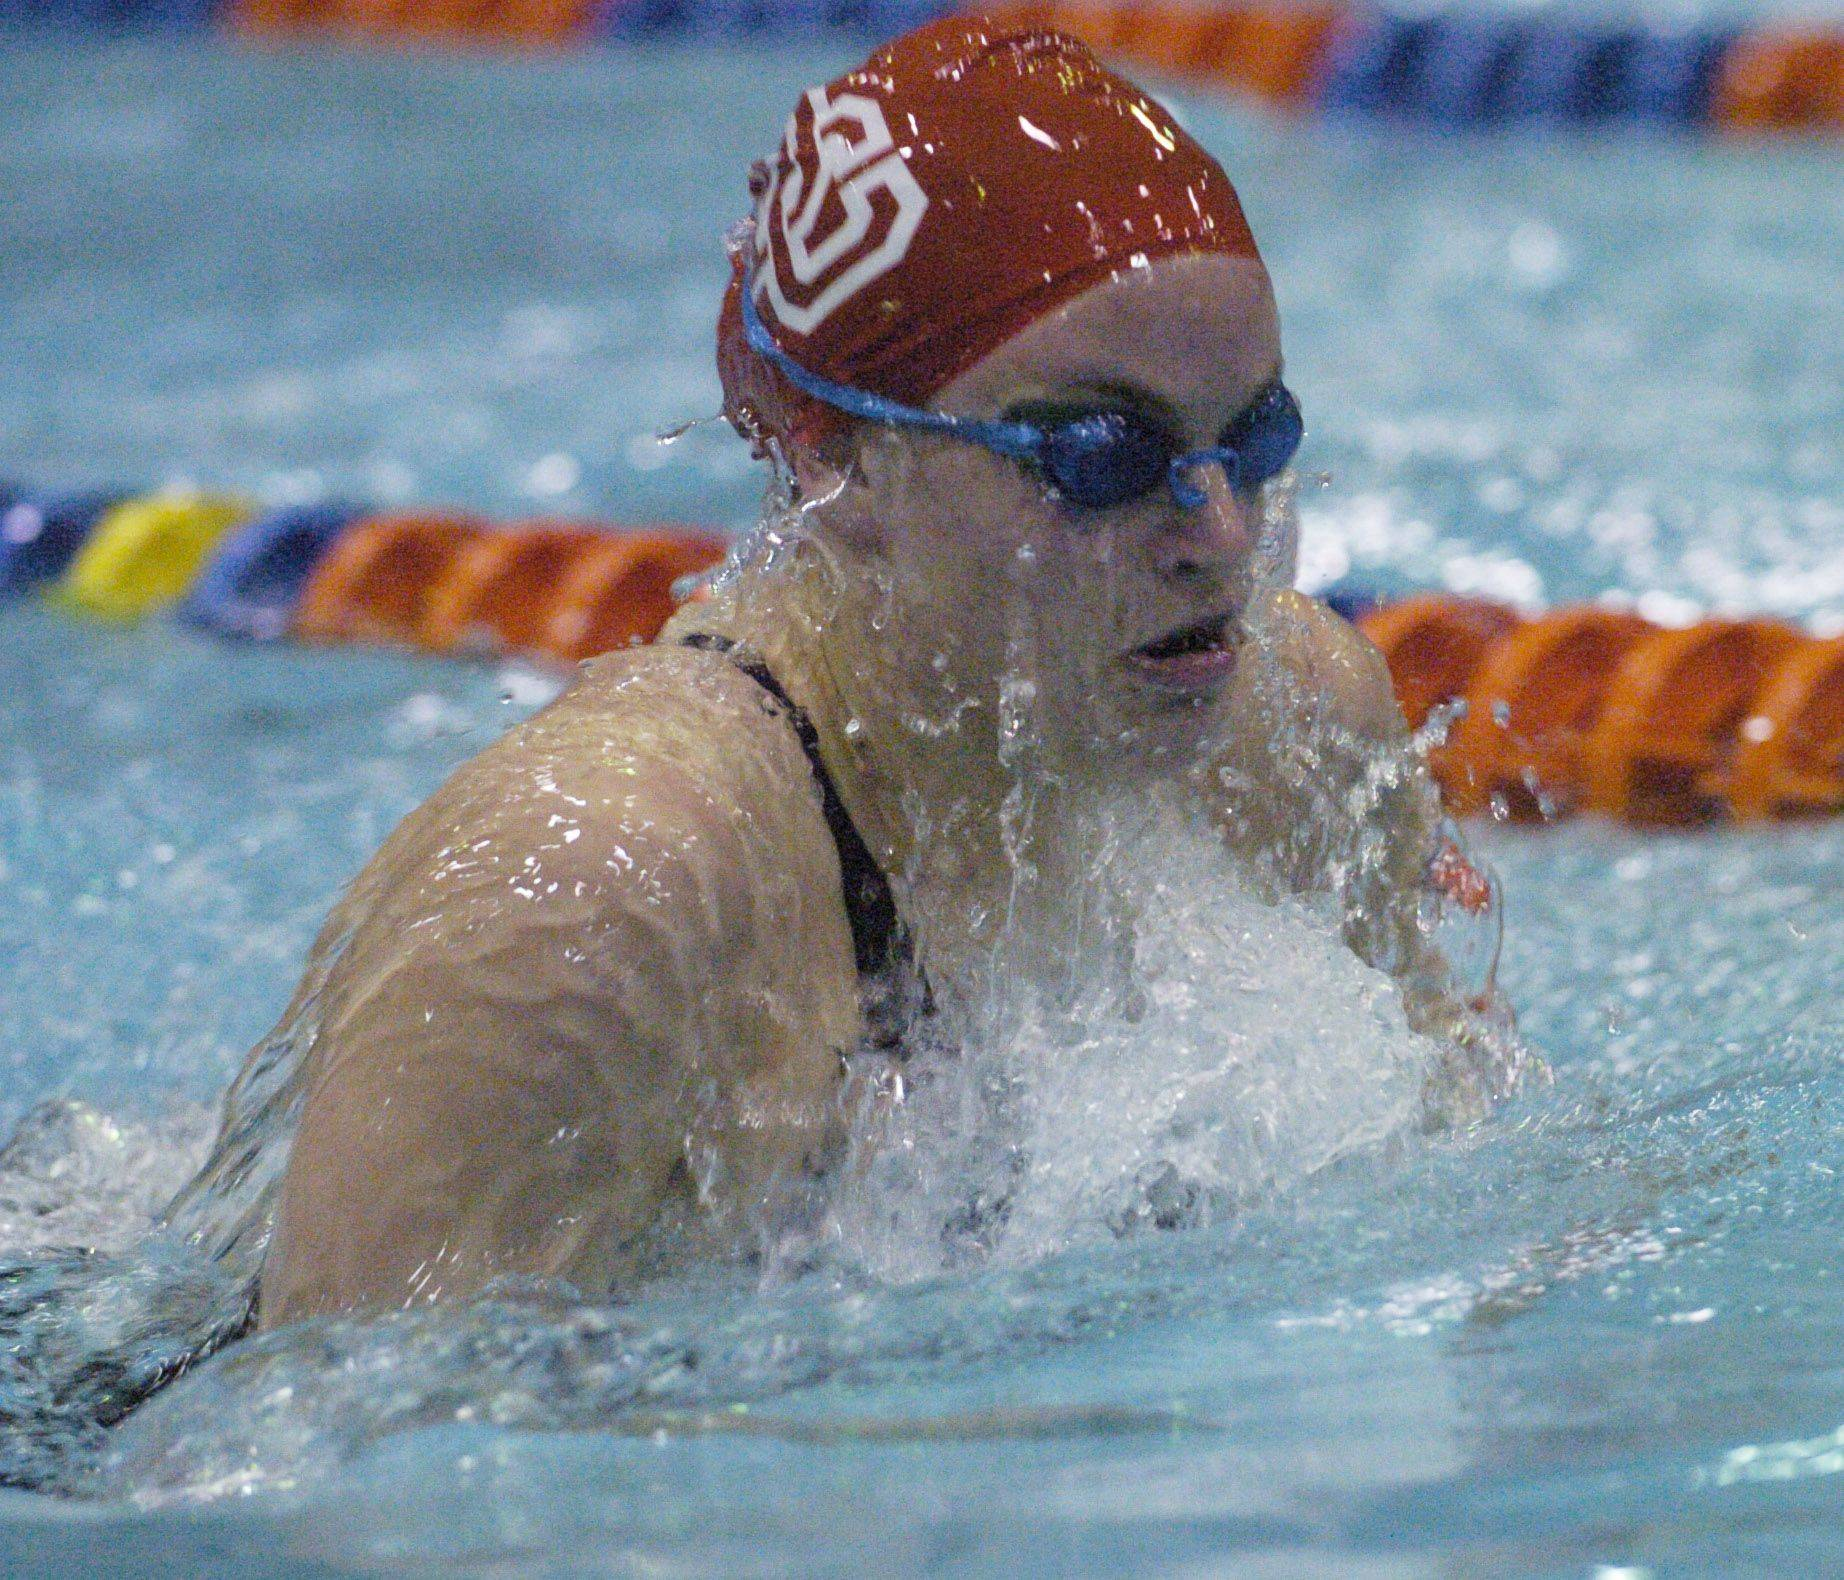 Colleen Champa swims the 100-yard breast stroke during Saturday's state swimming finals at Evanston.